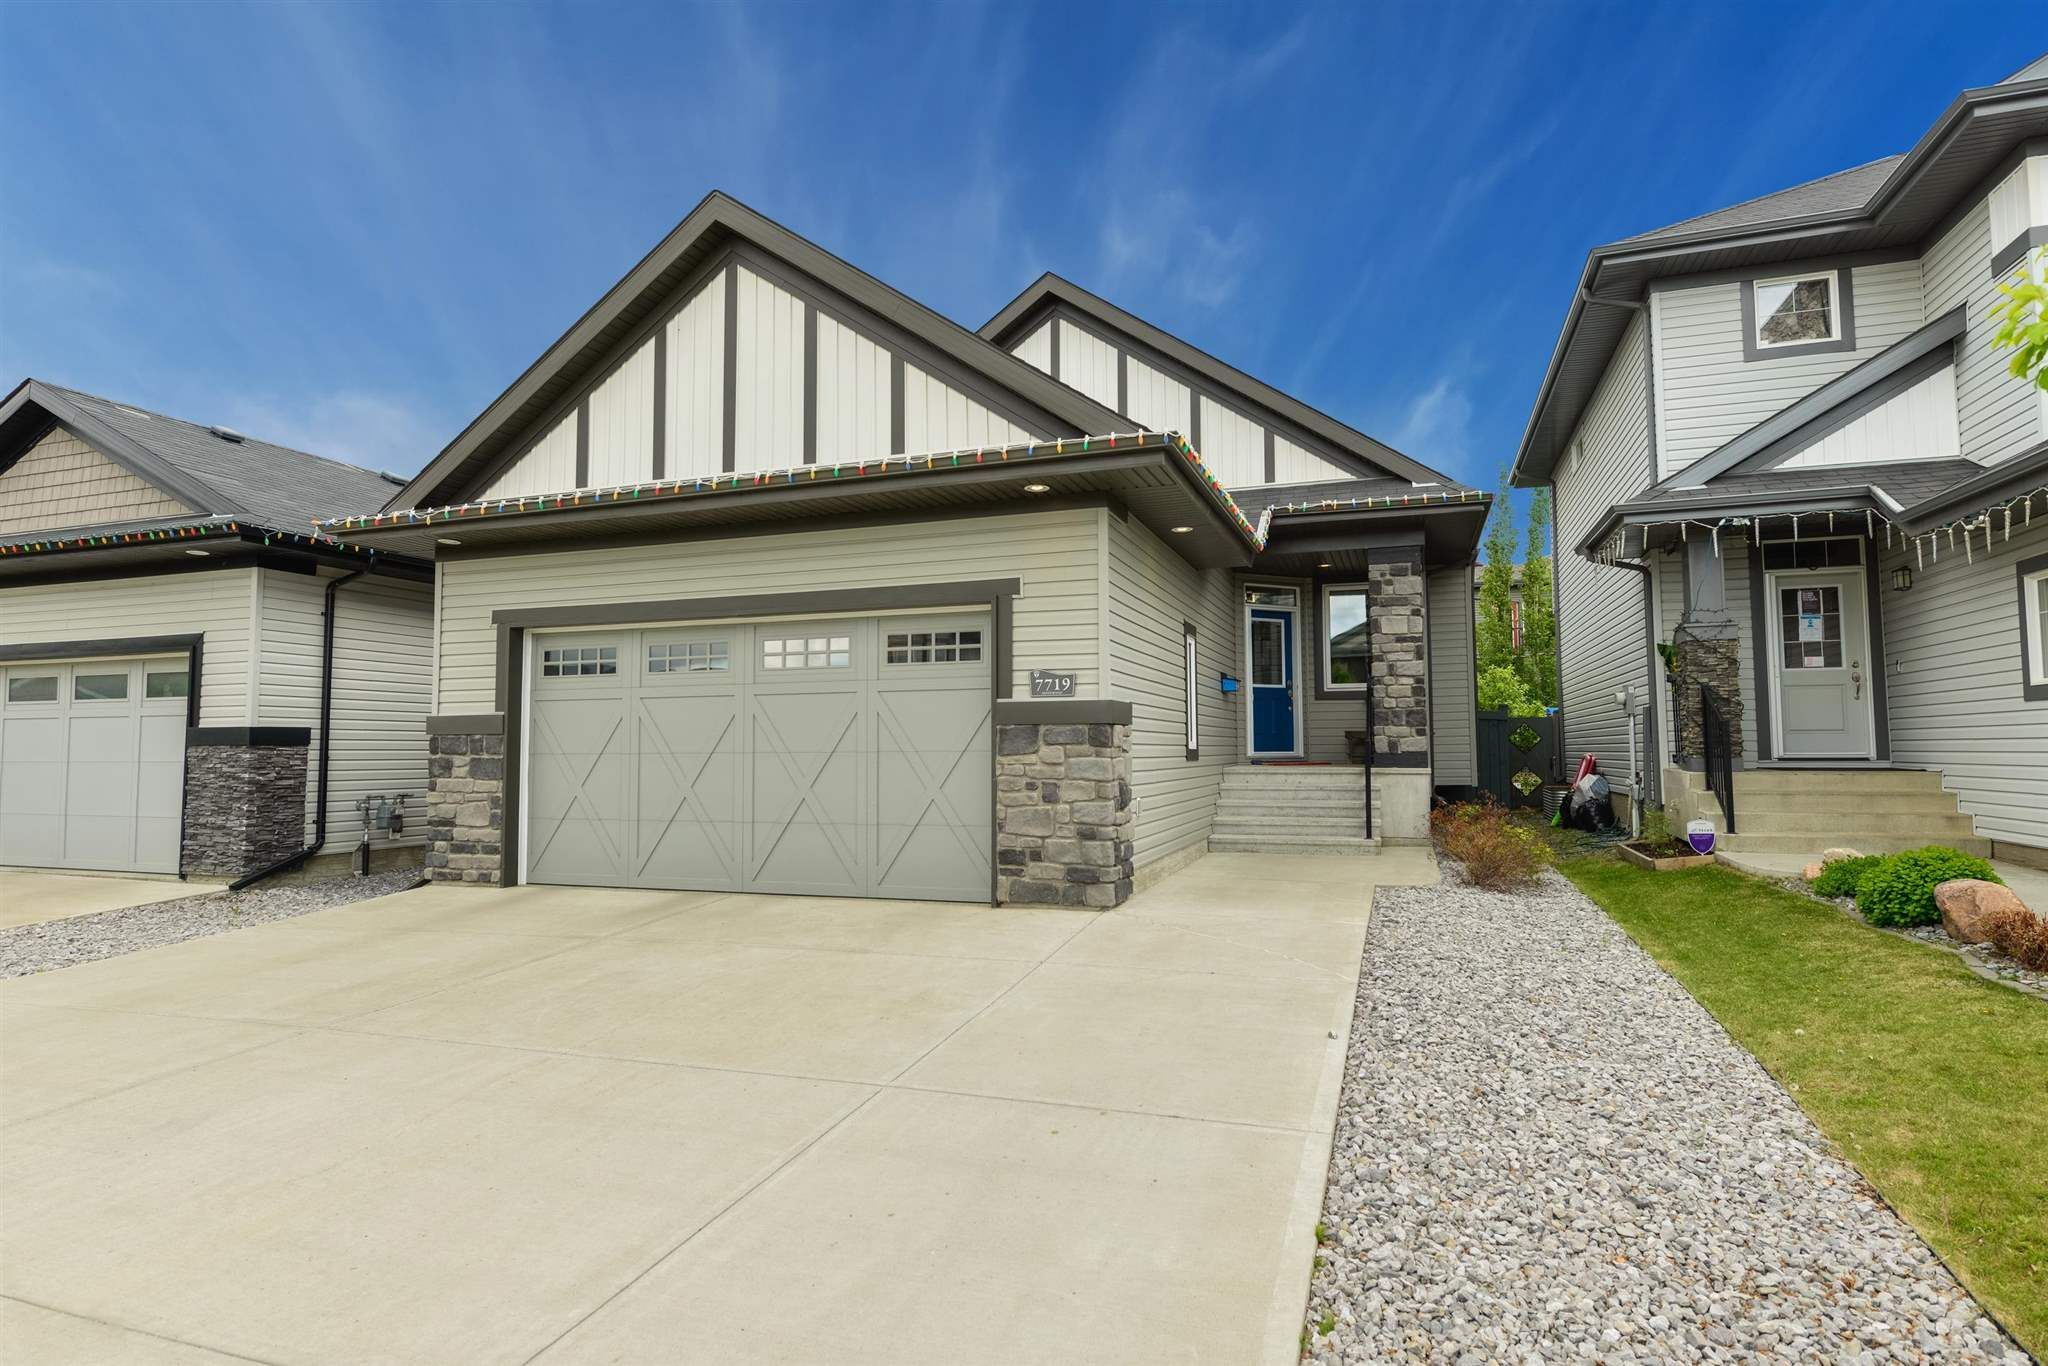 Main Photo: 7719 GETTY Wynd in Edmonton: Zone 58 House for sale : MLS®# E4248773